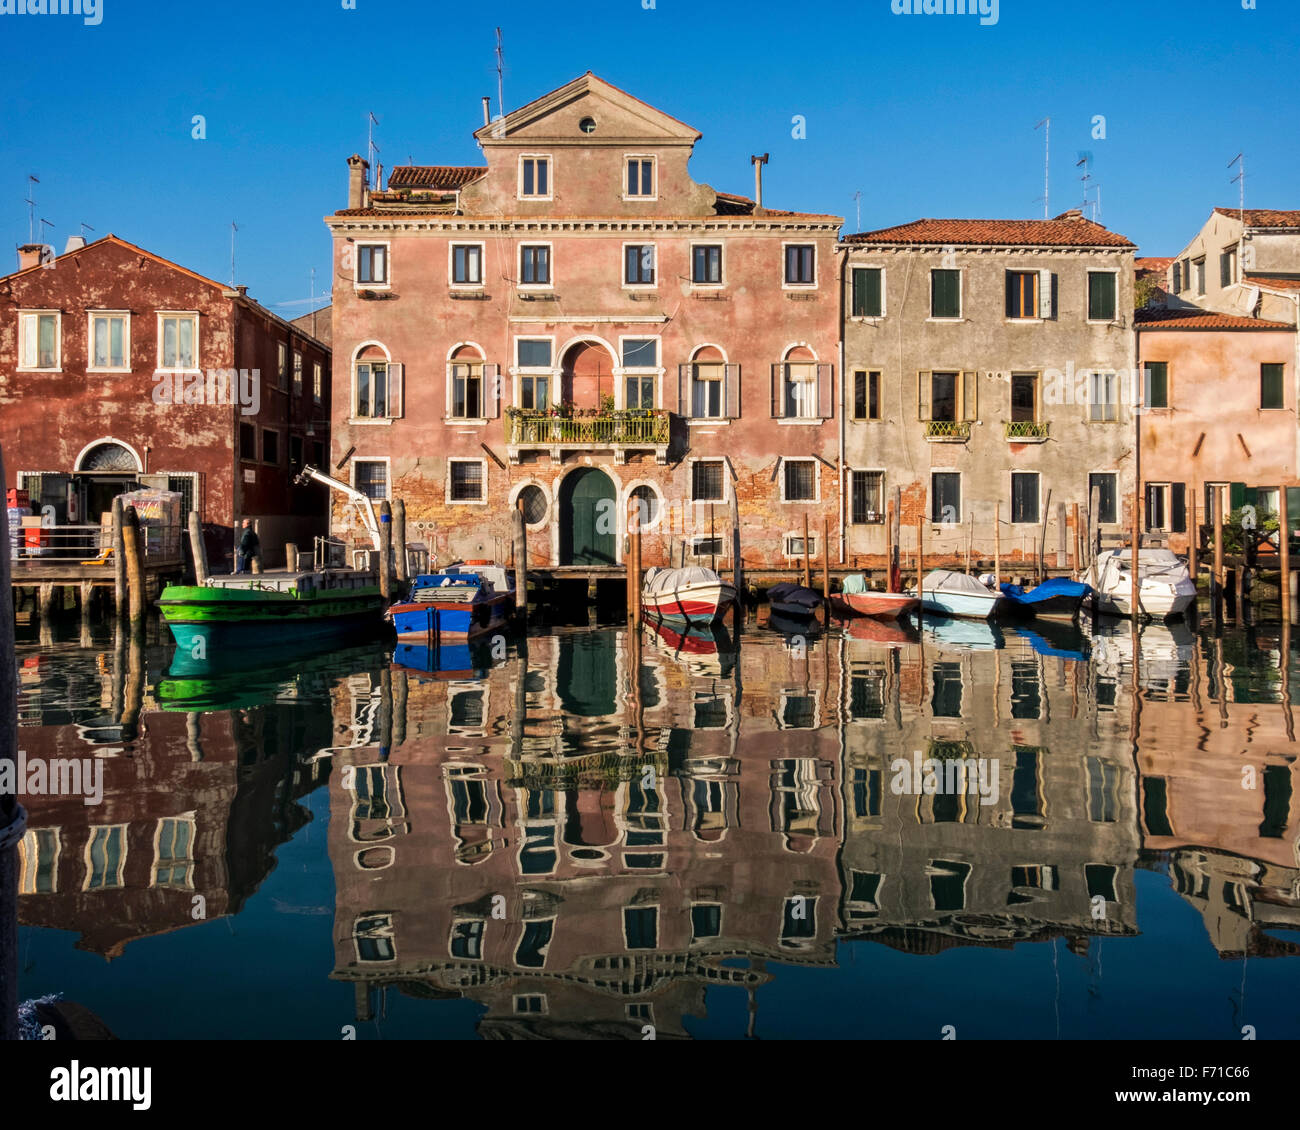 Venice, Castello, Sestiere, Italy - Harbour view - warehouse, Traditional houses, boats, reflections and warm colours - Stock Image